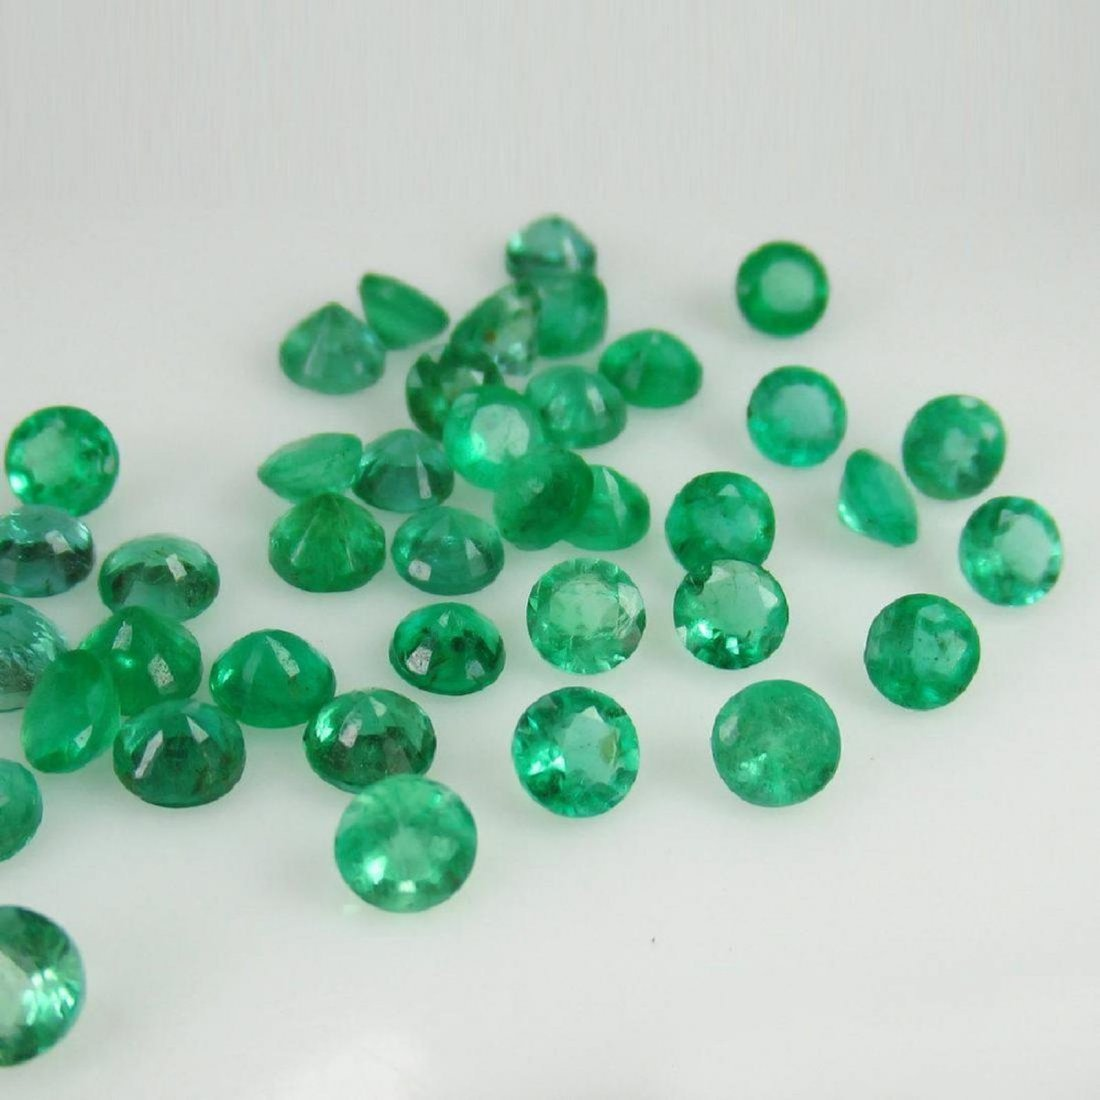 "10.10 Carat 47 Loose Round ""Diamond cut"" Emeralds"